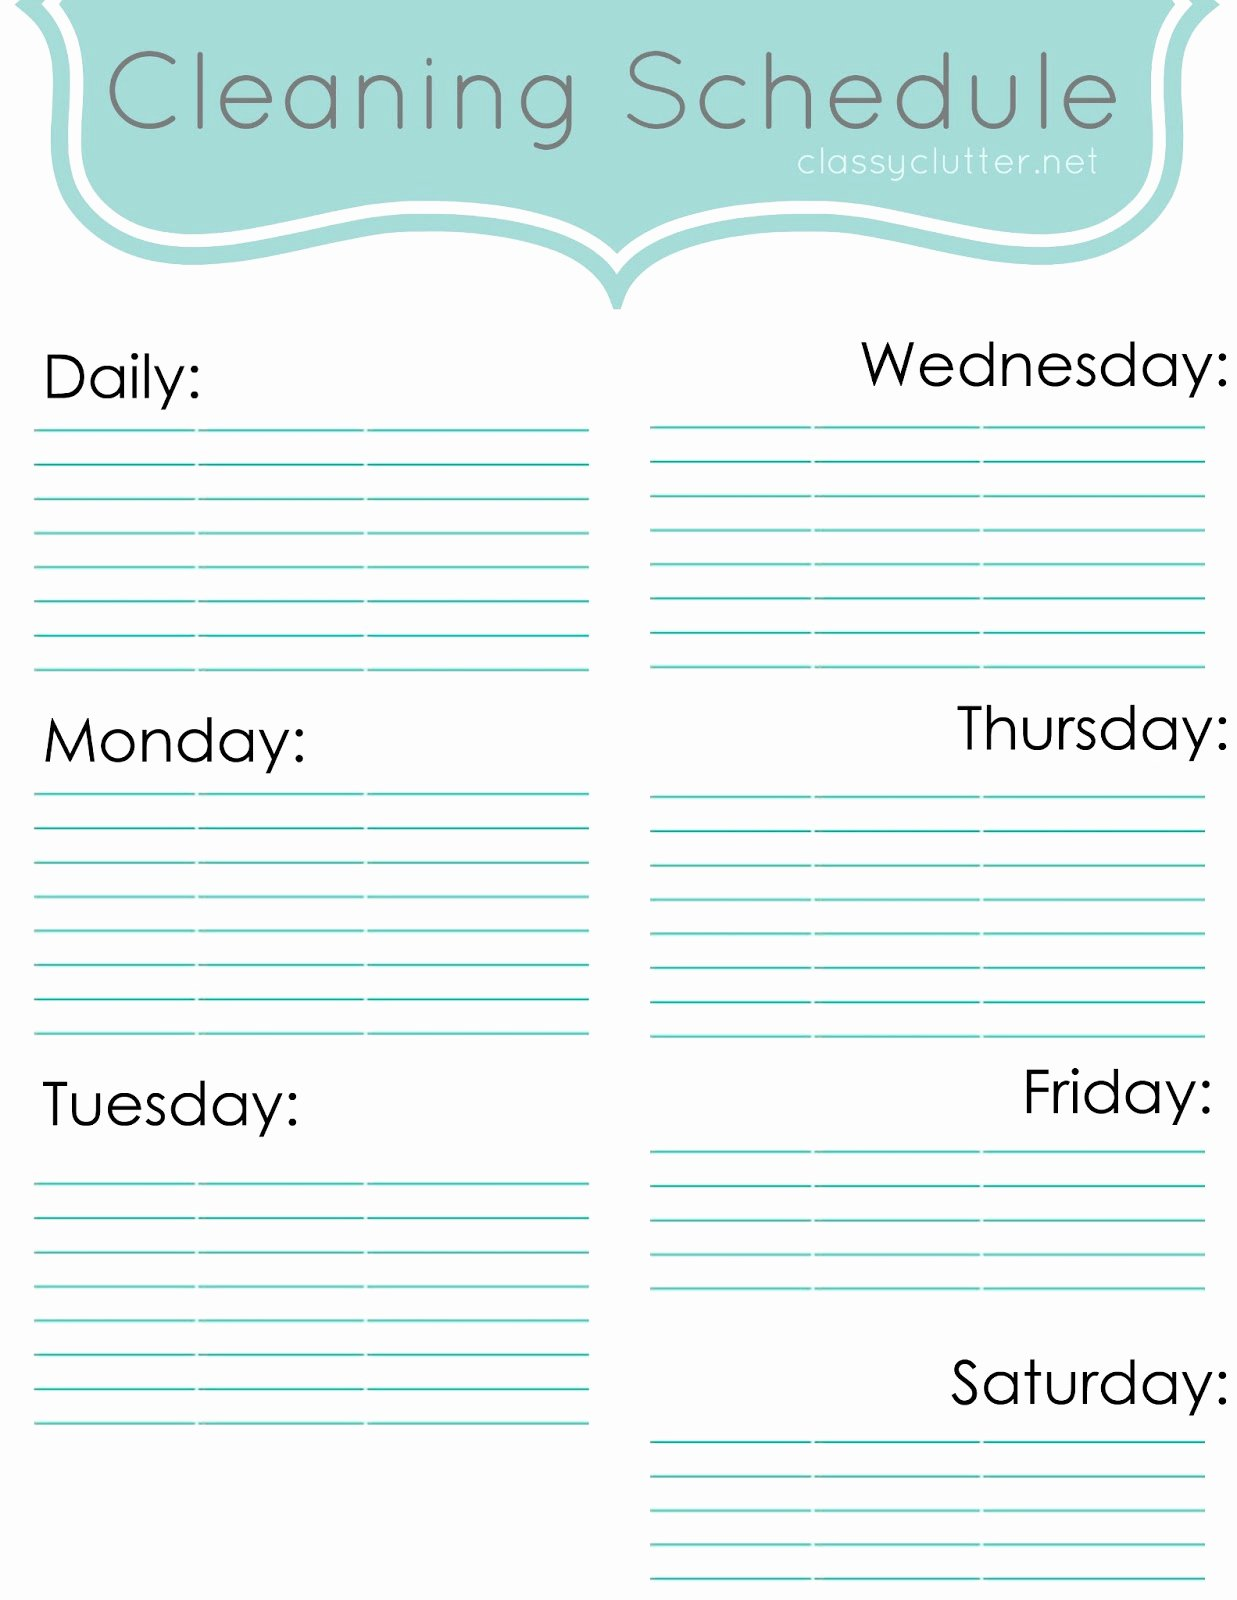 Free Cleaning Schedule Template Luxury Weekly Cleaning Schedule Improve Your Cleaning Habits